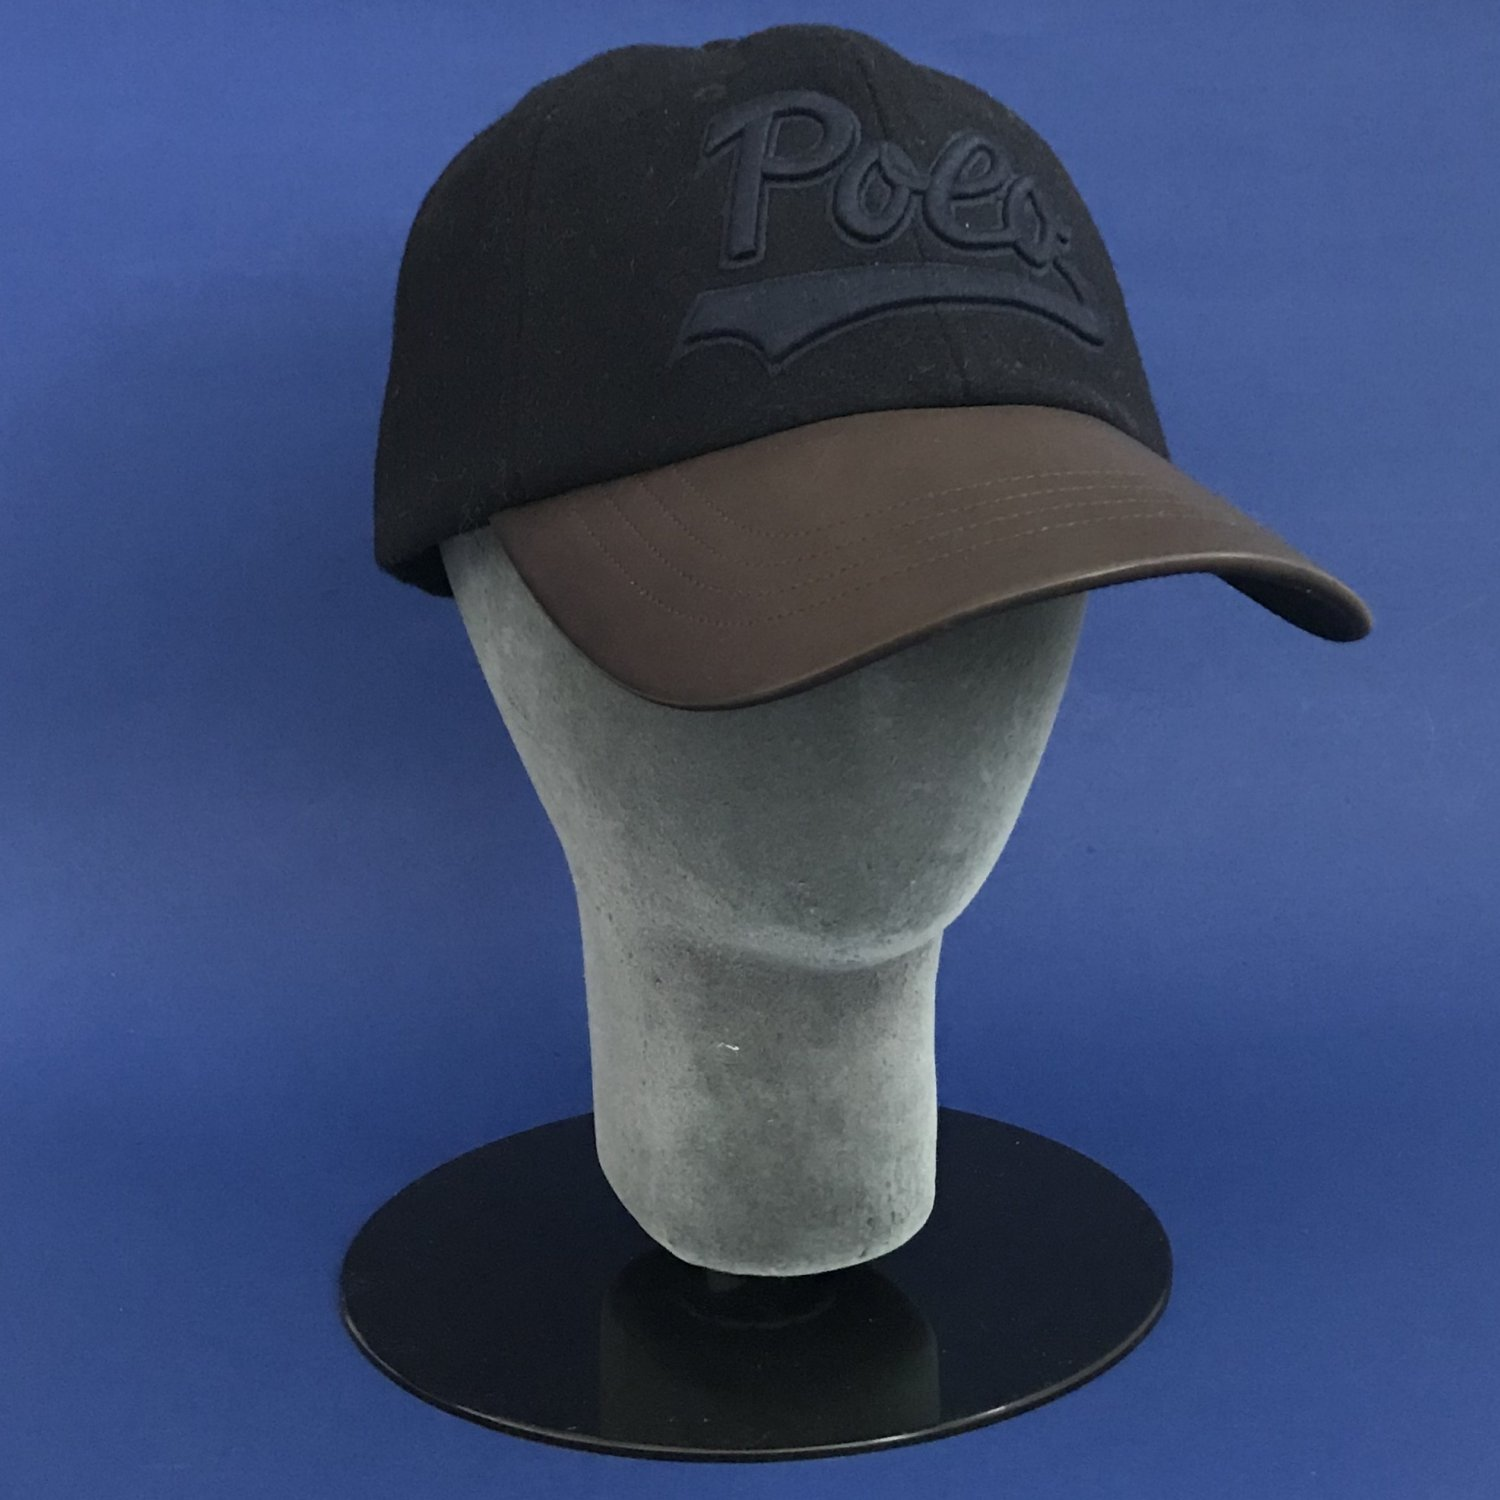 NWT Polo Ralph Lauren Navy Embroidered Wool w/Leather Baseball Cap Hat - O/S